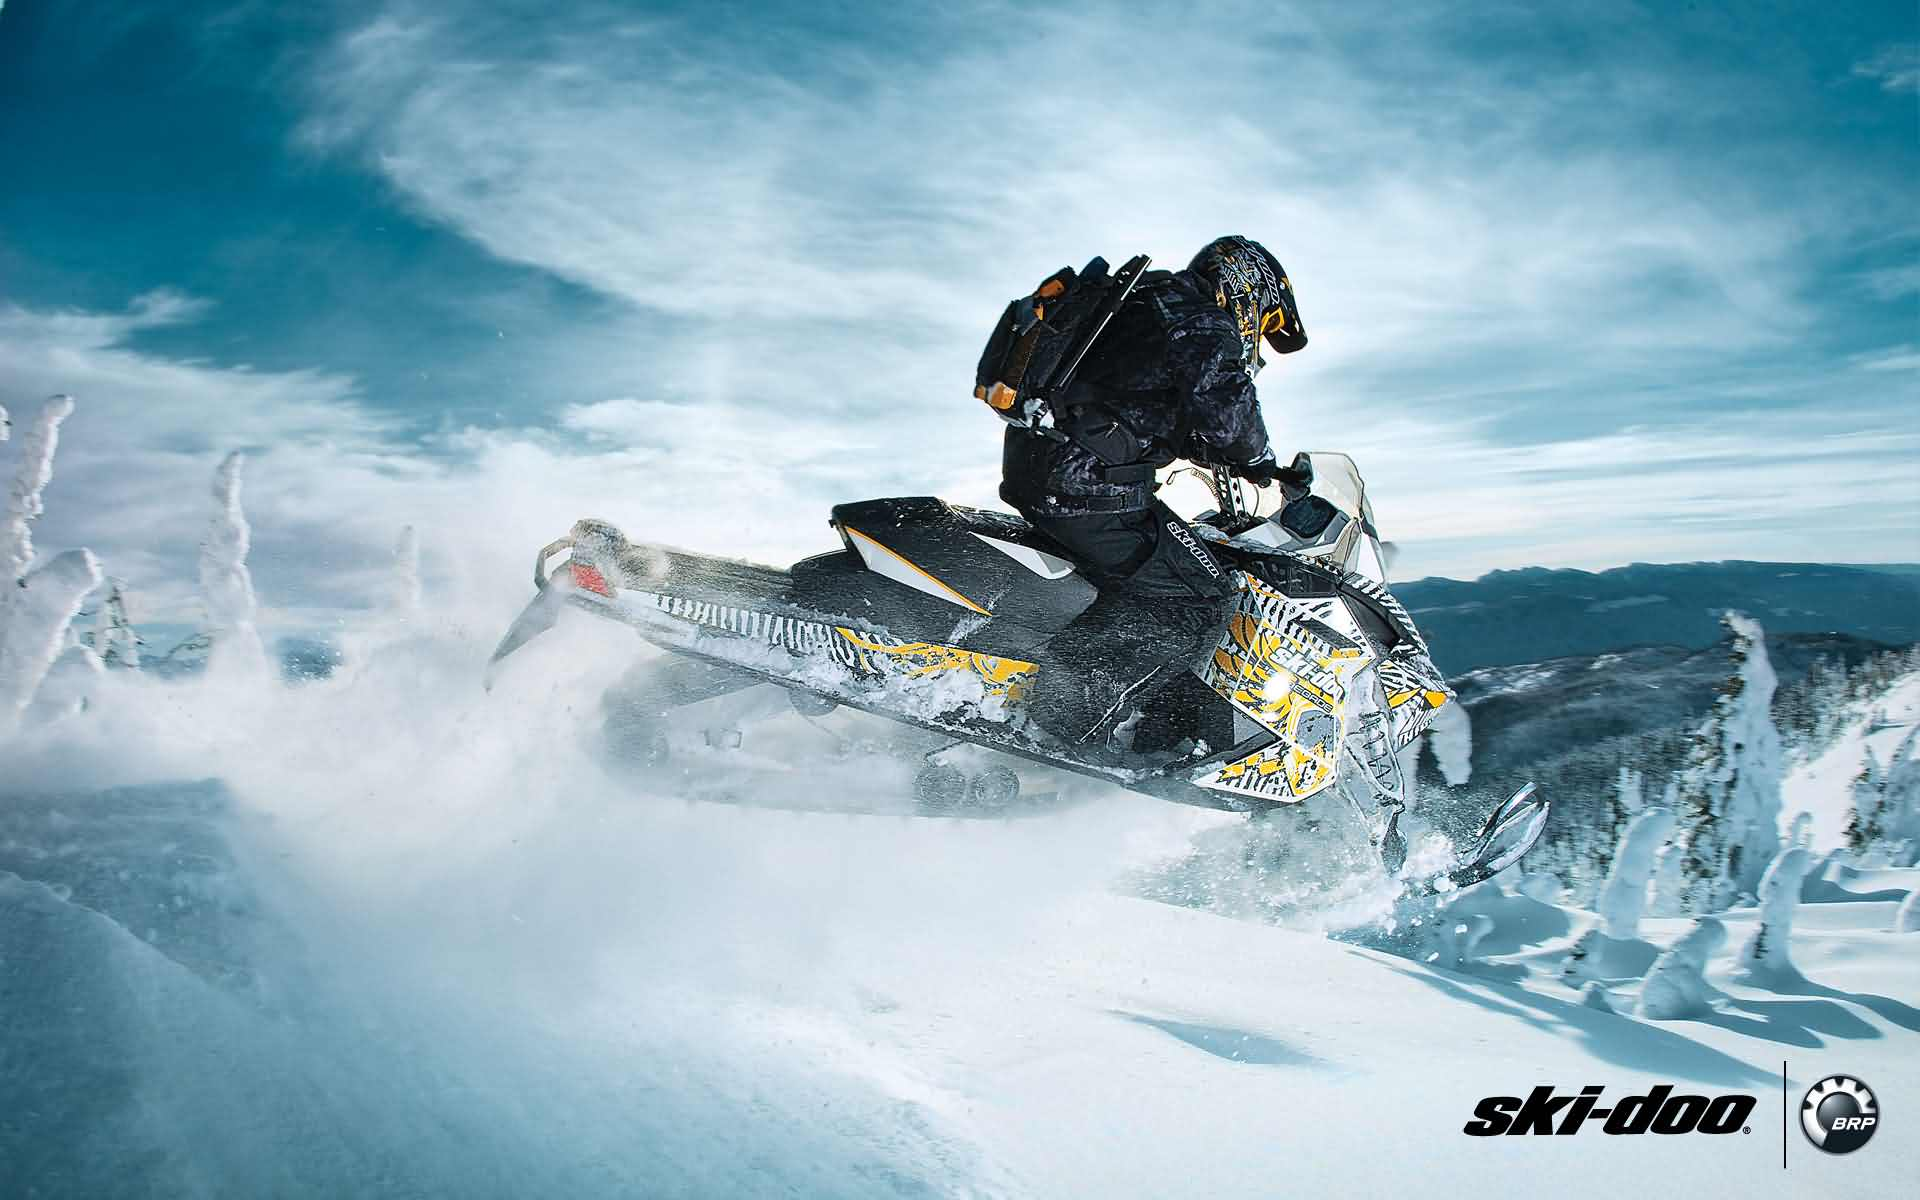 Wallpaper Wednesday: The Snowmobile | TransWorld SNOWboarding